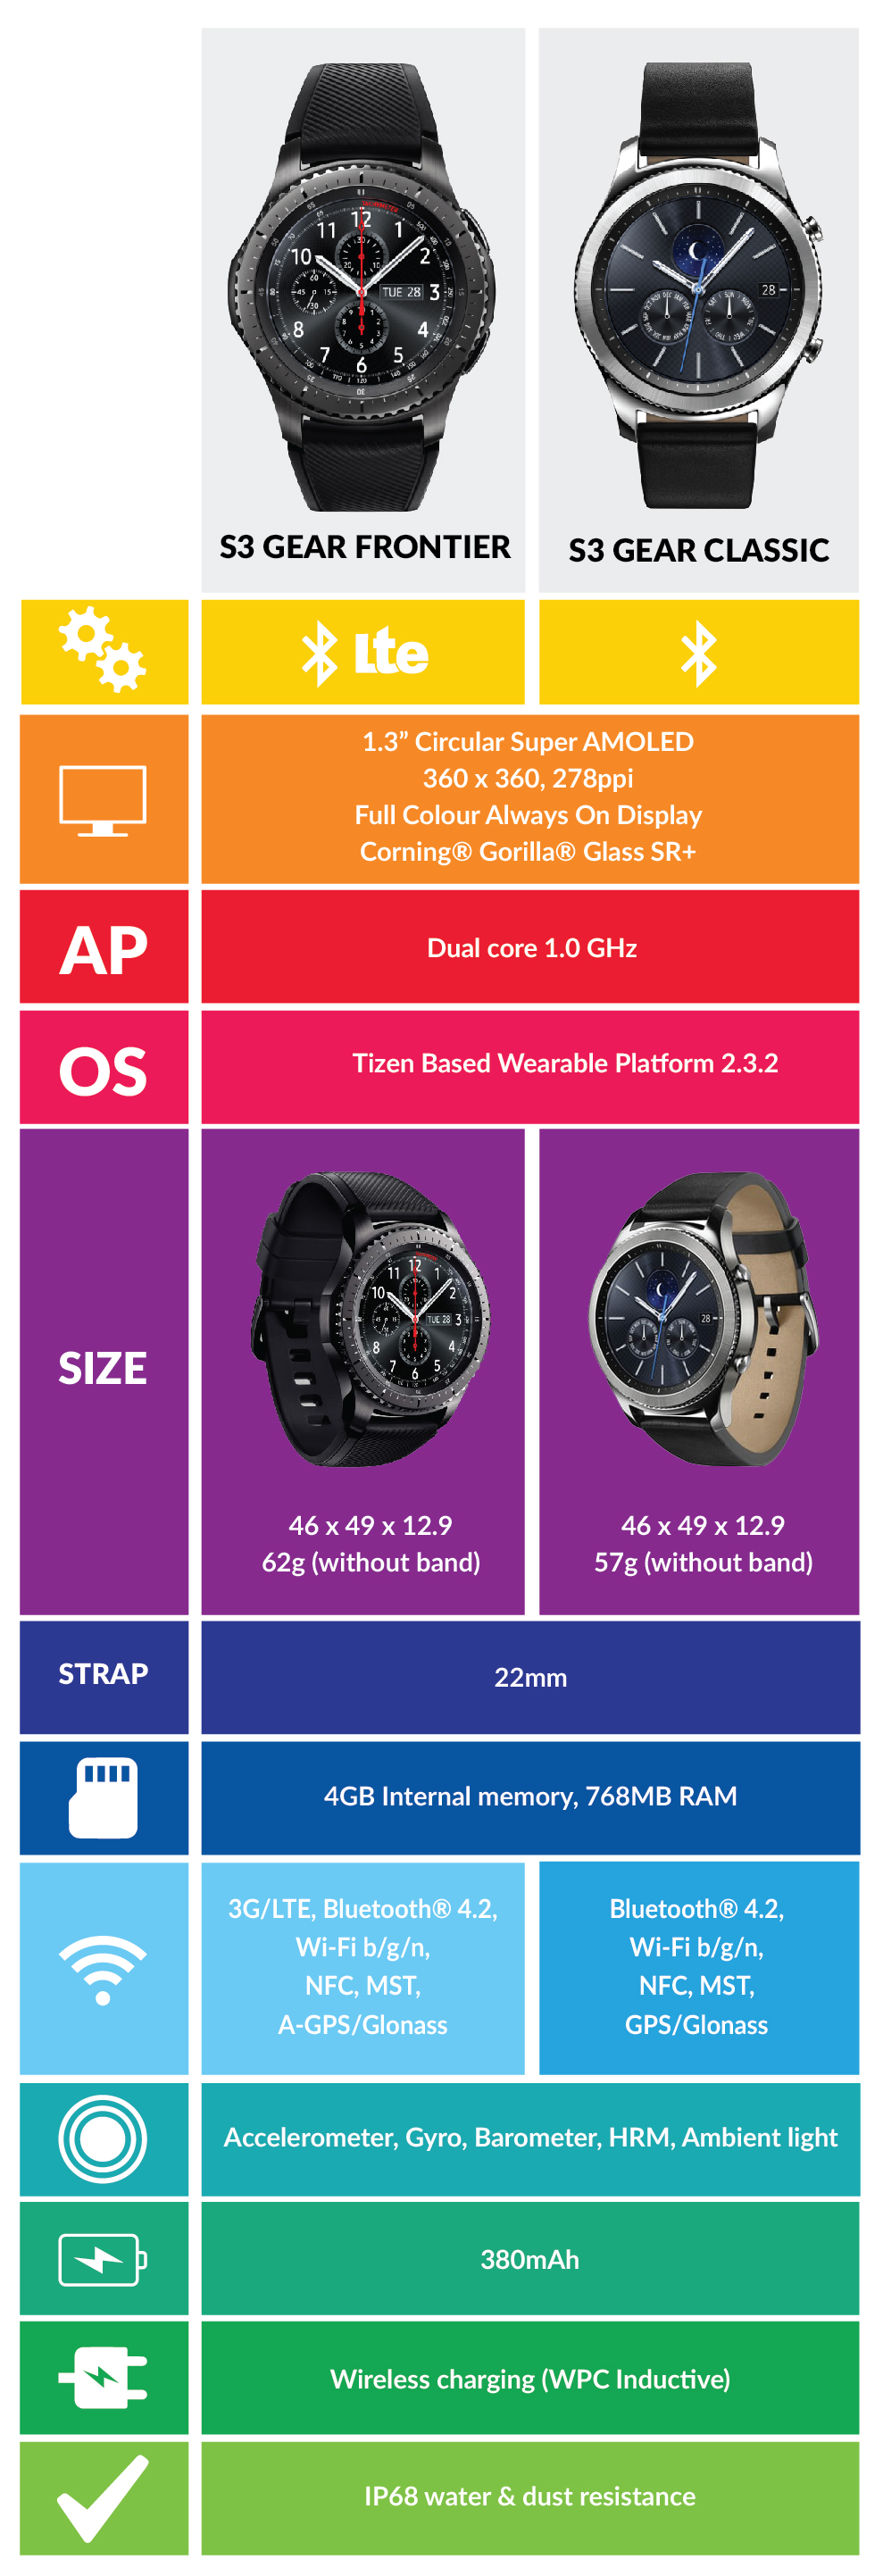 Samsung GearS3 Smartwatch Comparison